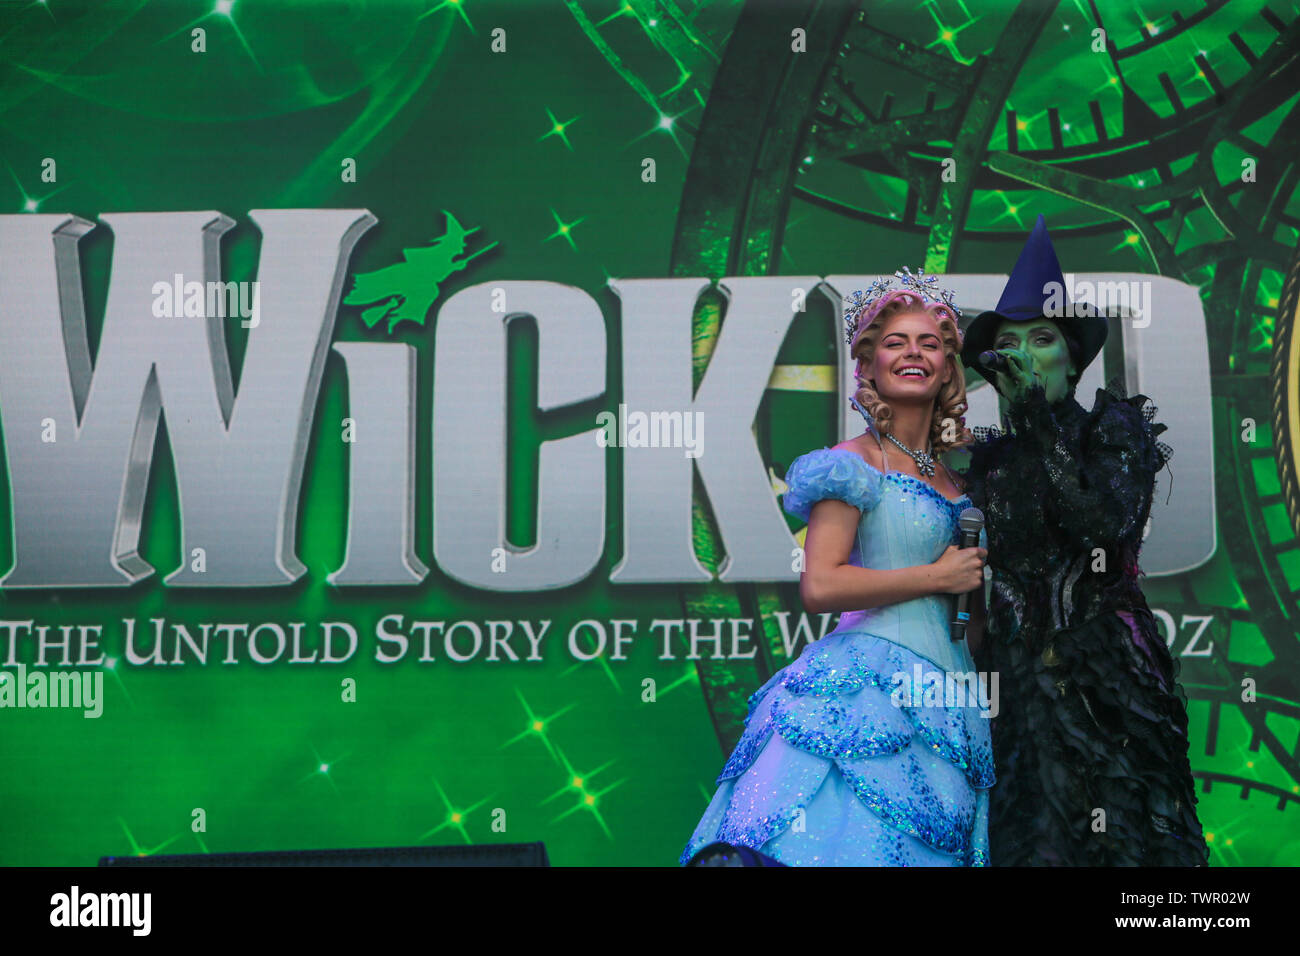 Wicked Musical London Stock Photos & Wicked Musical London